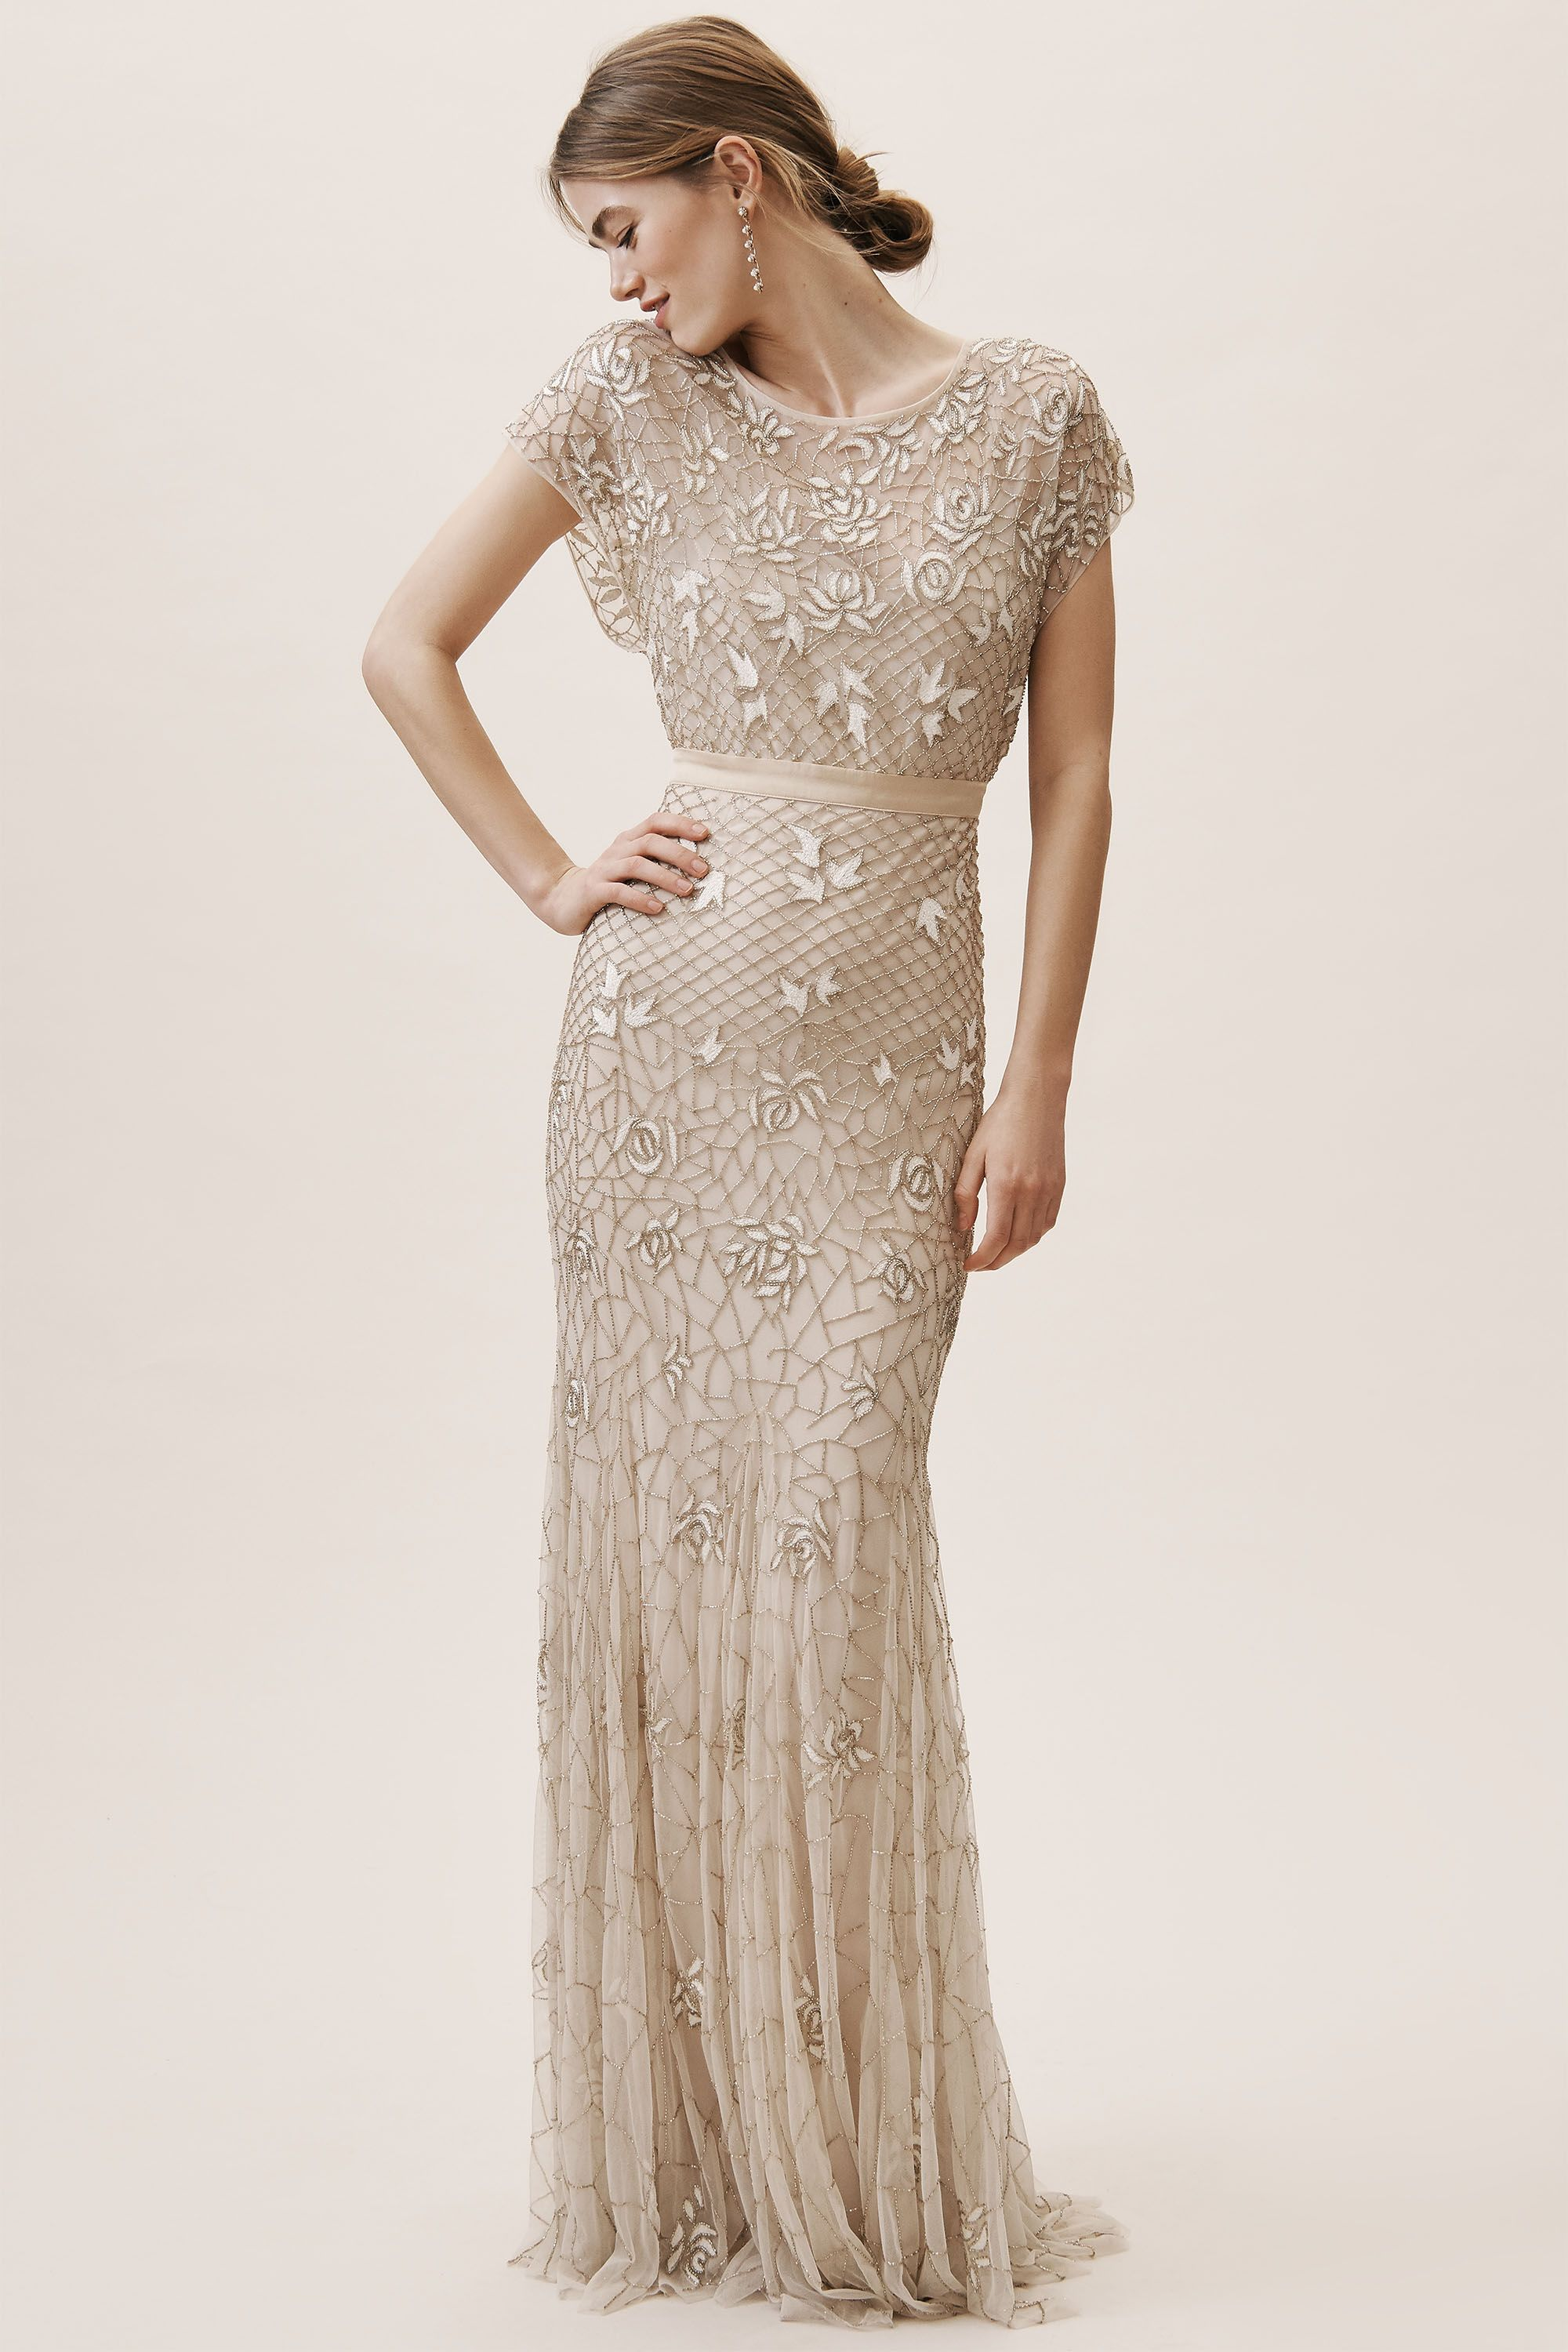 1920s Wedding Dresses 19 Gorgeous Gowns To Add Some Gatsby Glam To Your Bridal Style,Resale Wedding Dresses Houston